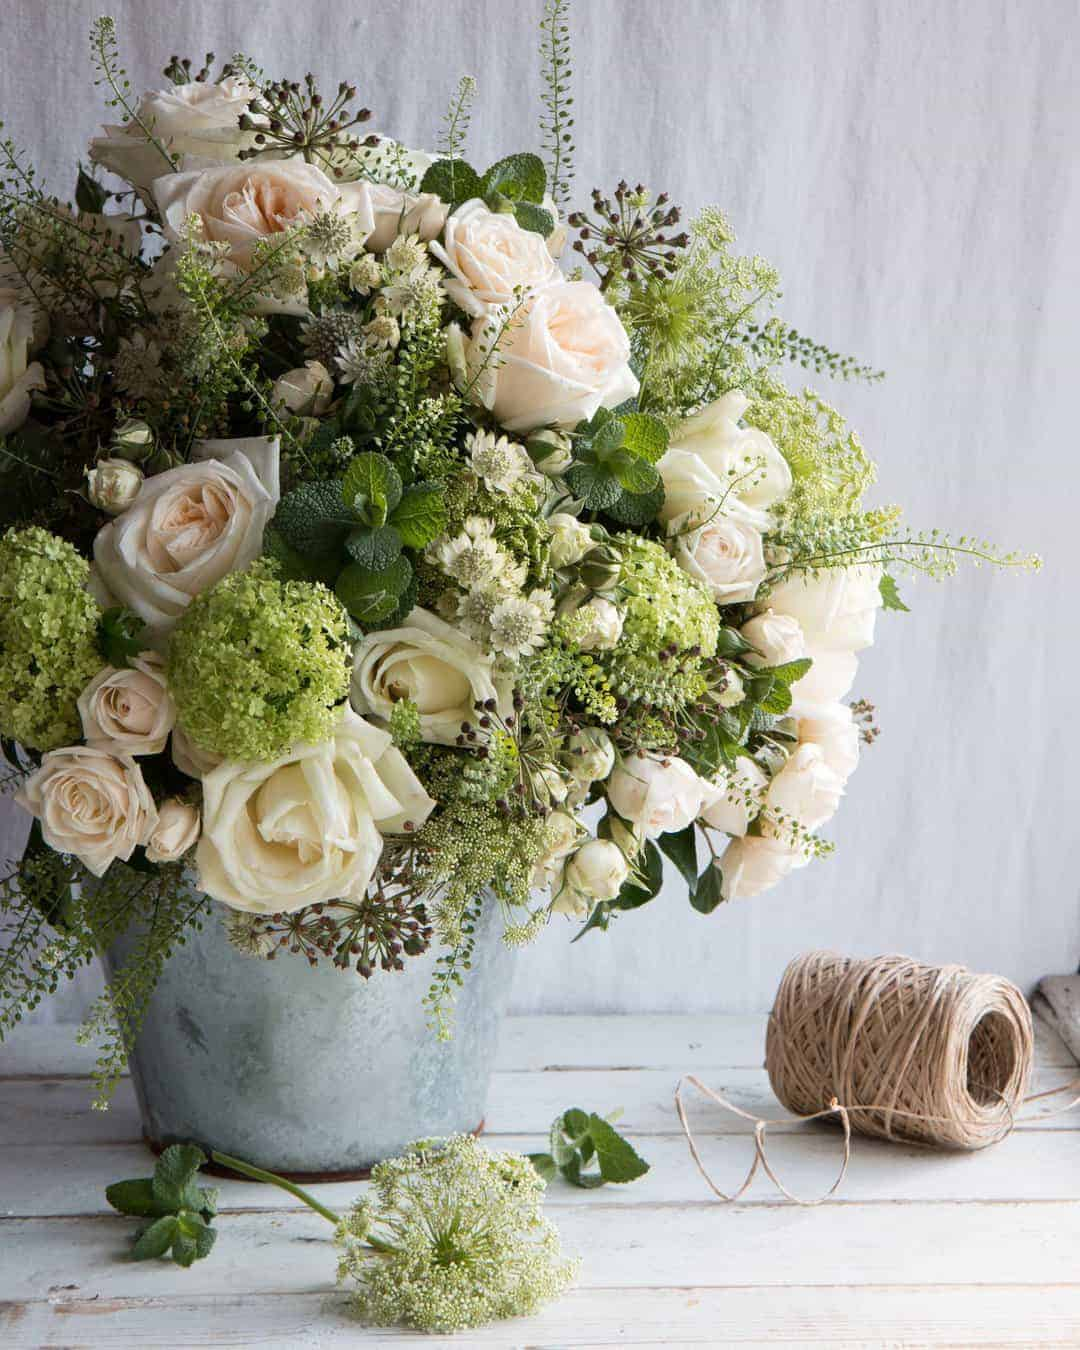 love these pale pink, white and lime green spring flowers by The Real Flower Company - margaret merrill scented roses, fresh mint, seed heads, lime white wild flowers, blossom in a galvanised metal pot. Click through for more beautiful spring flower arrangement ideas you'll love